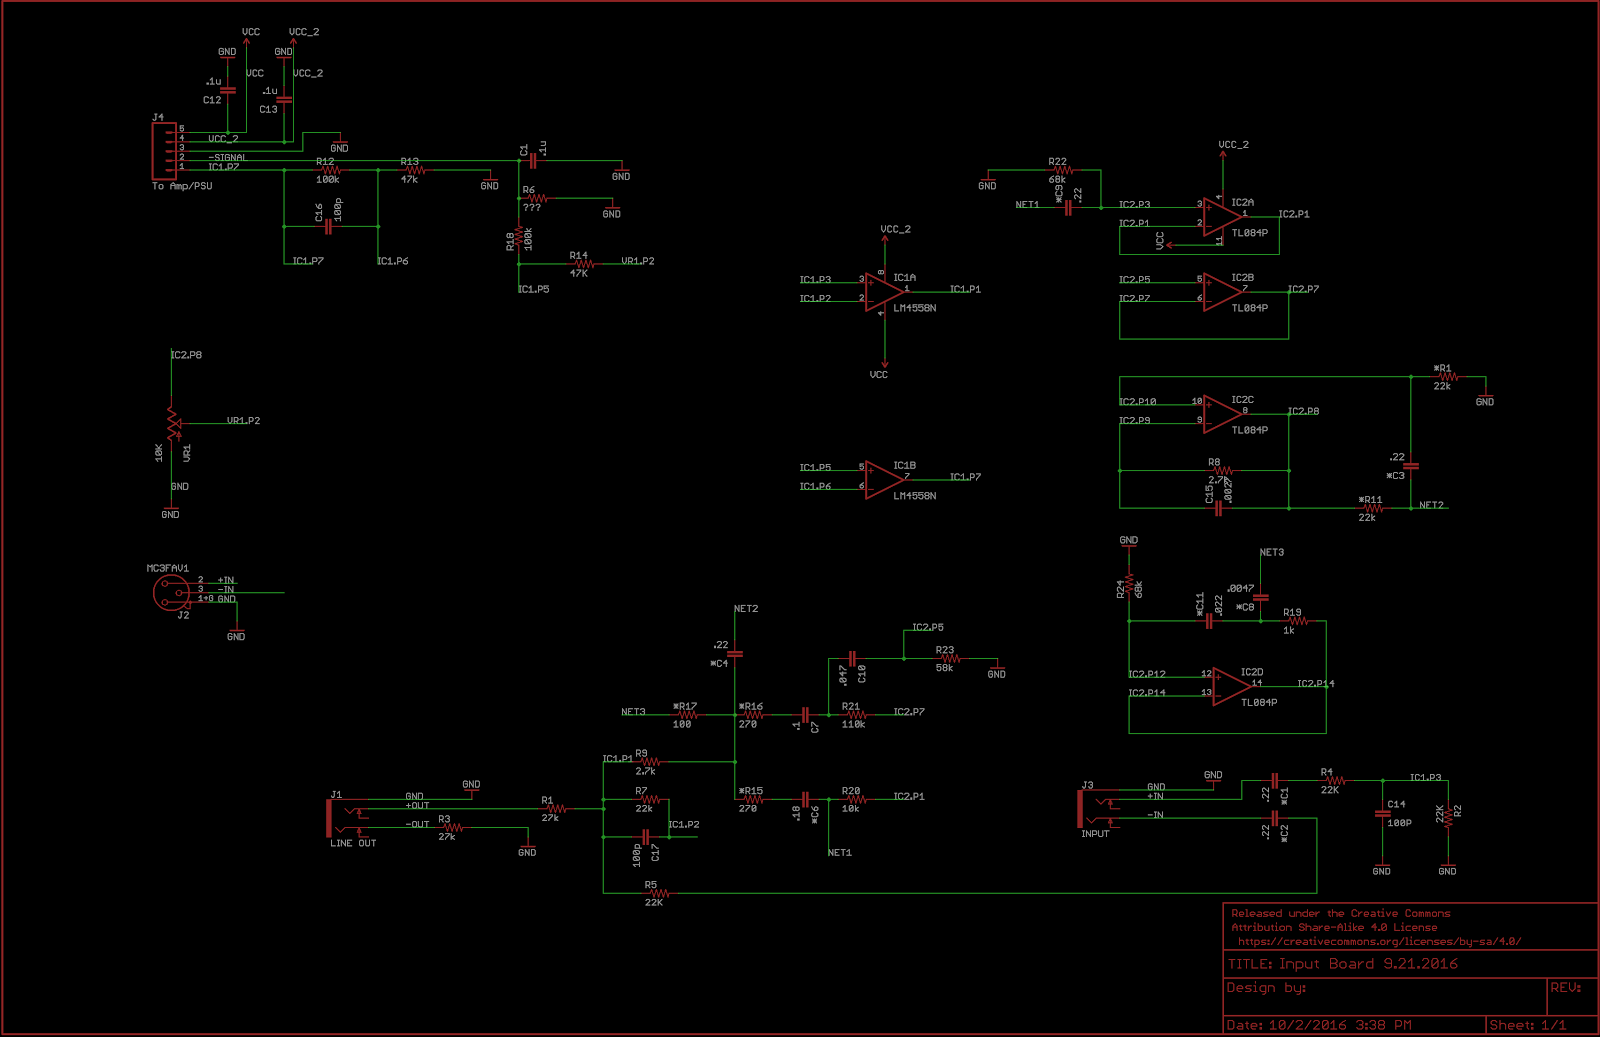 Surprise Mackie Thump 12 Boom Goes The Diode Googling Around I Find Schematics Like This There Is Also A Date Of Design 2014 And Revision So Maybe Few Changes As They Optimize Board Here Image Eagle File